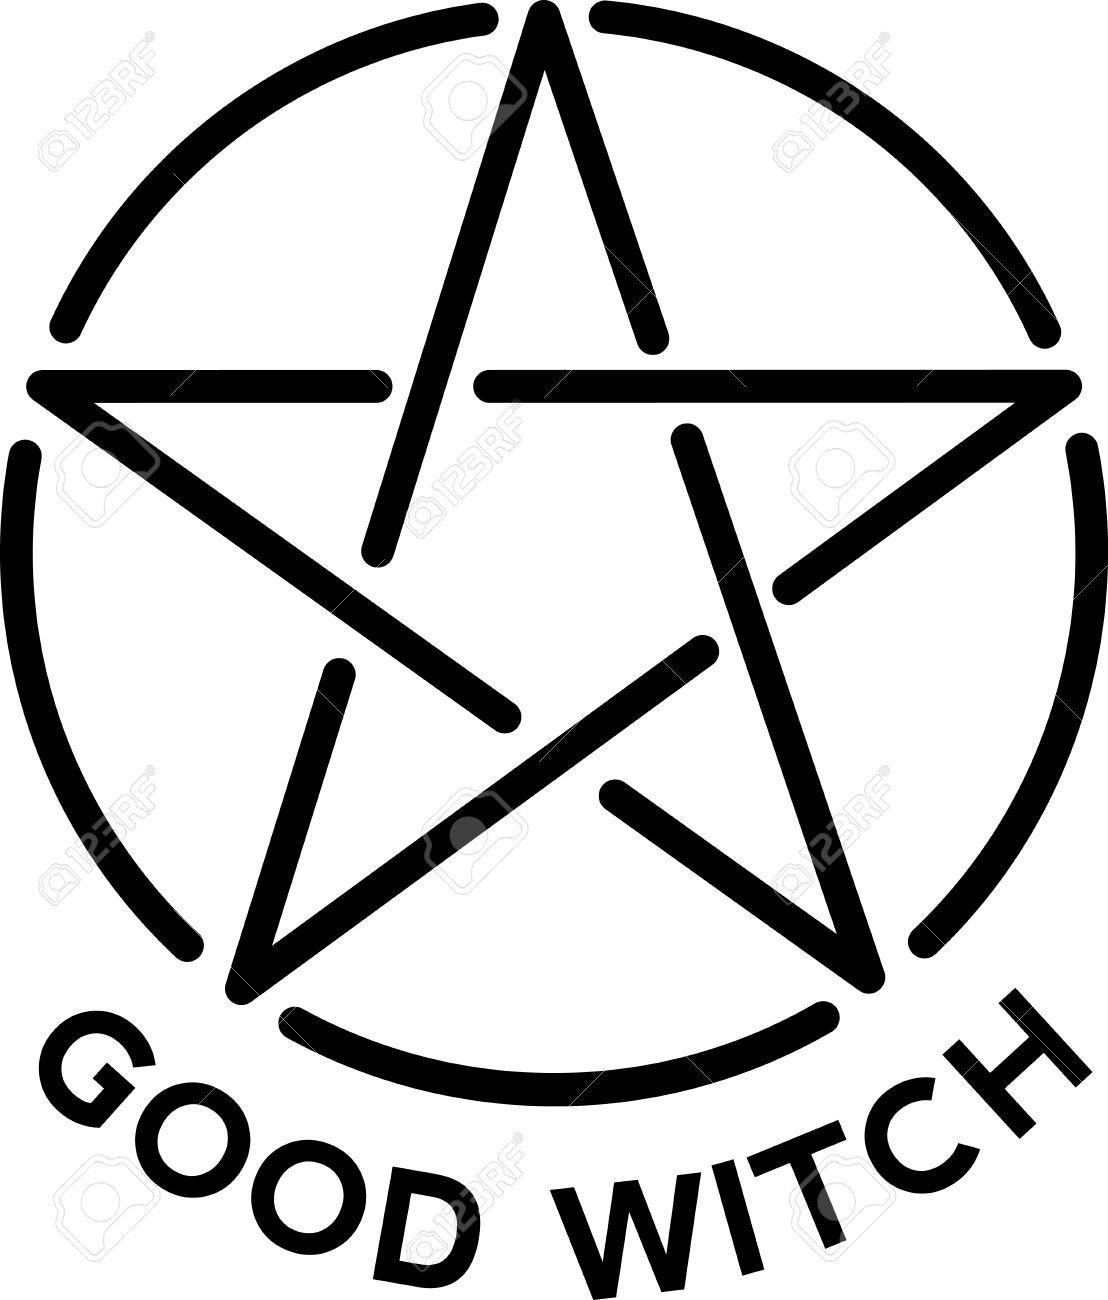 Vector - Wicca, pagan, witch, religious, symbol, logo, icon, star,  pentagram, shape, circle, round